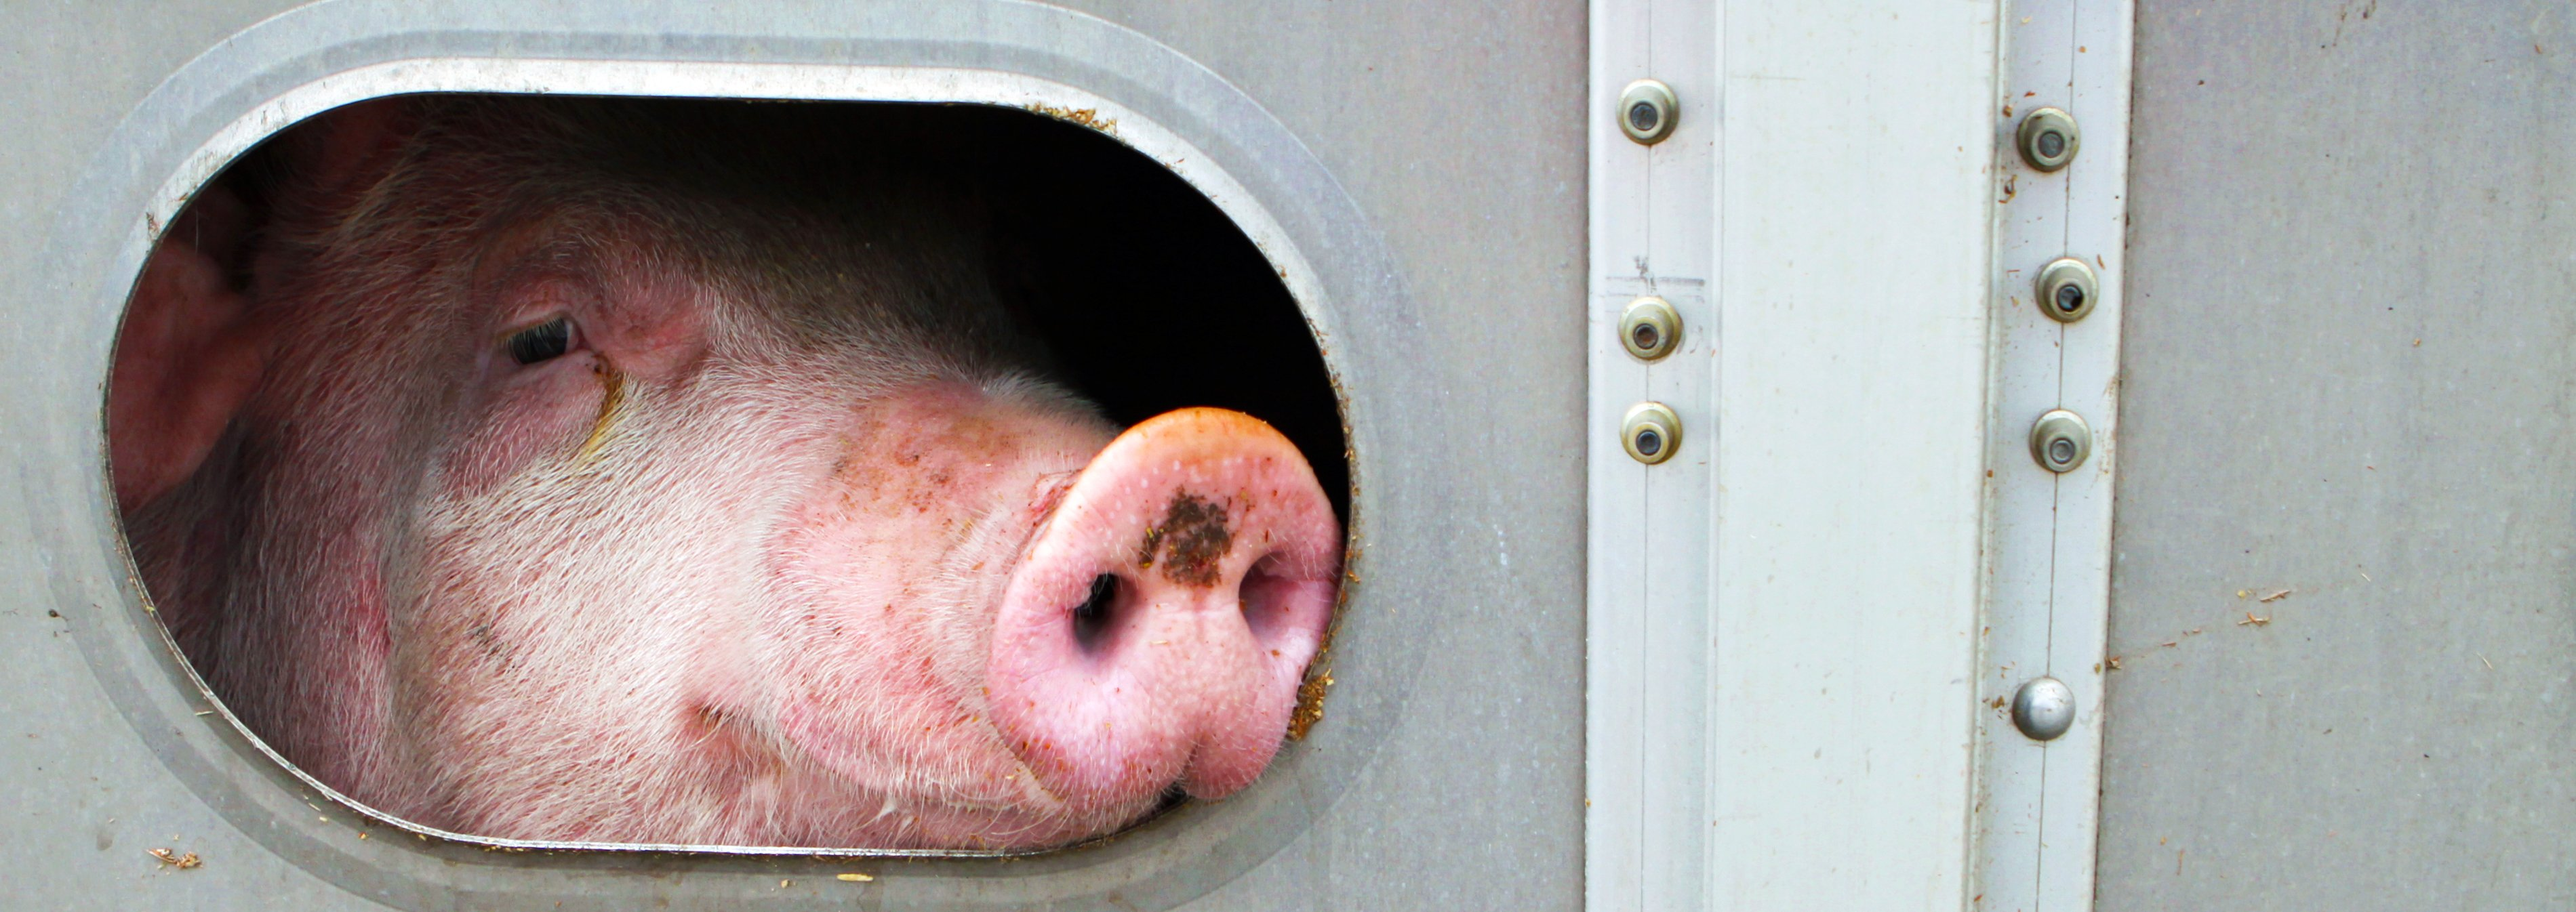 Close-up of pig looking through window like opening of truck with mud or fecal matter on her snout and face.